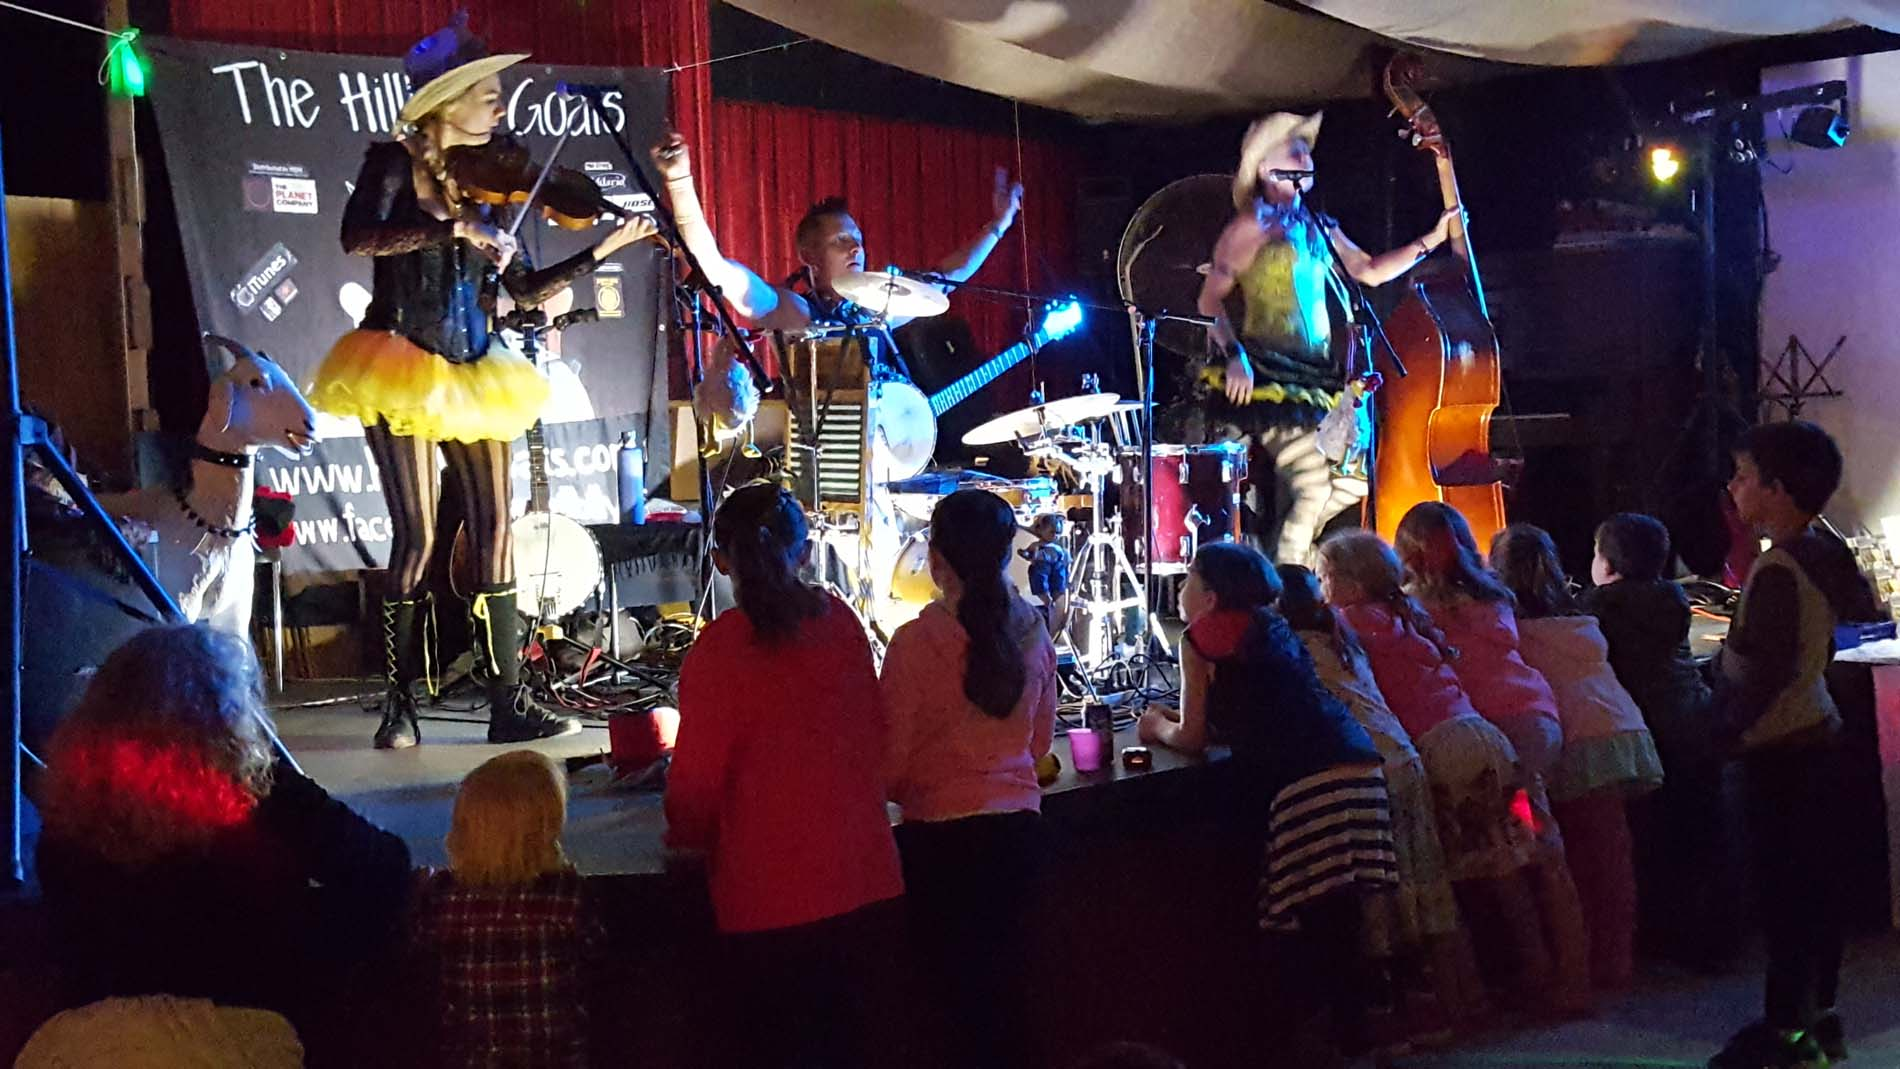 The Hillbilly Goats band performing on stage